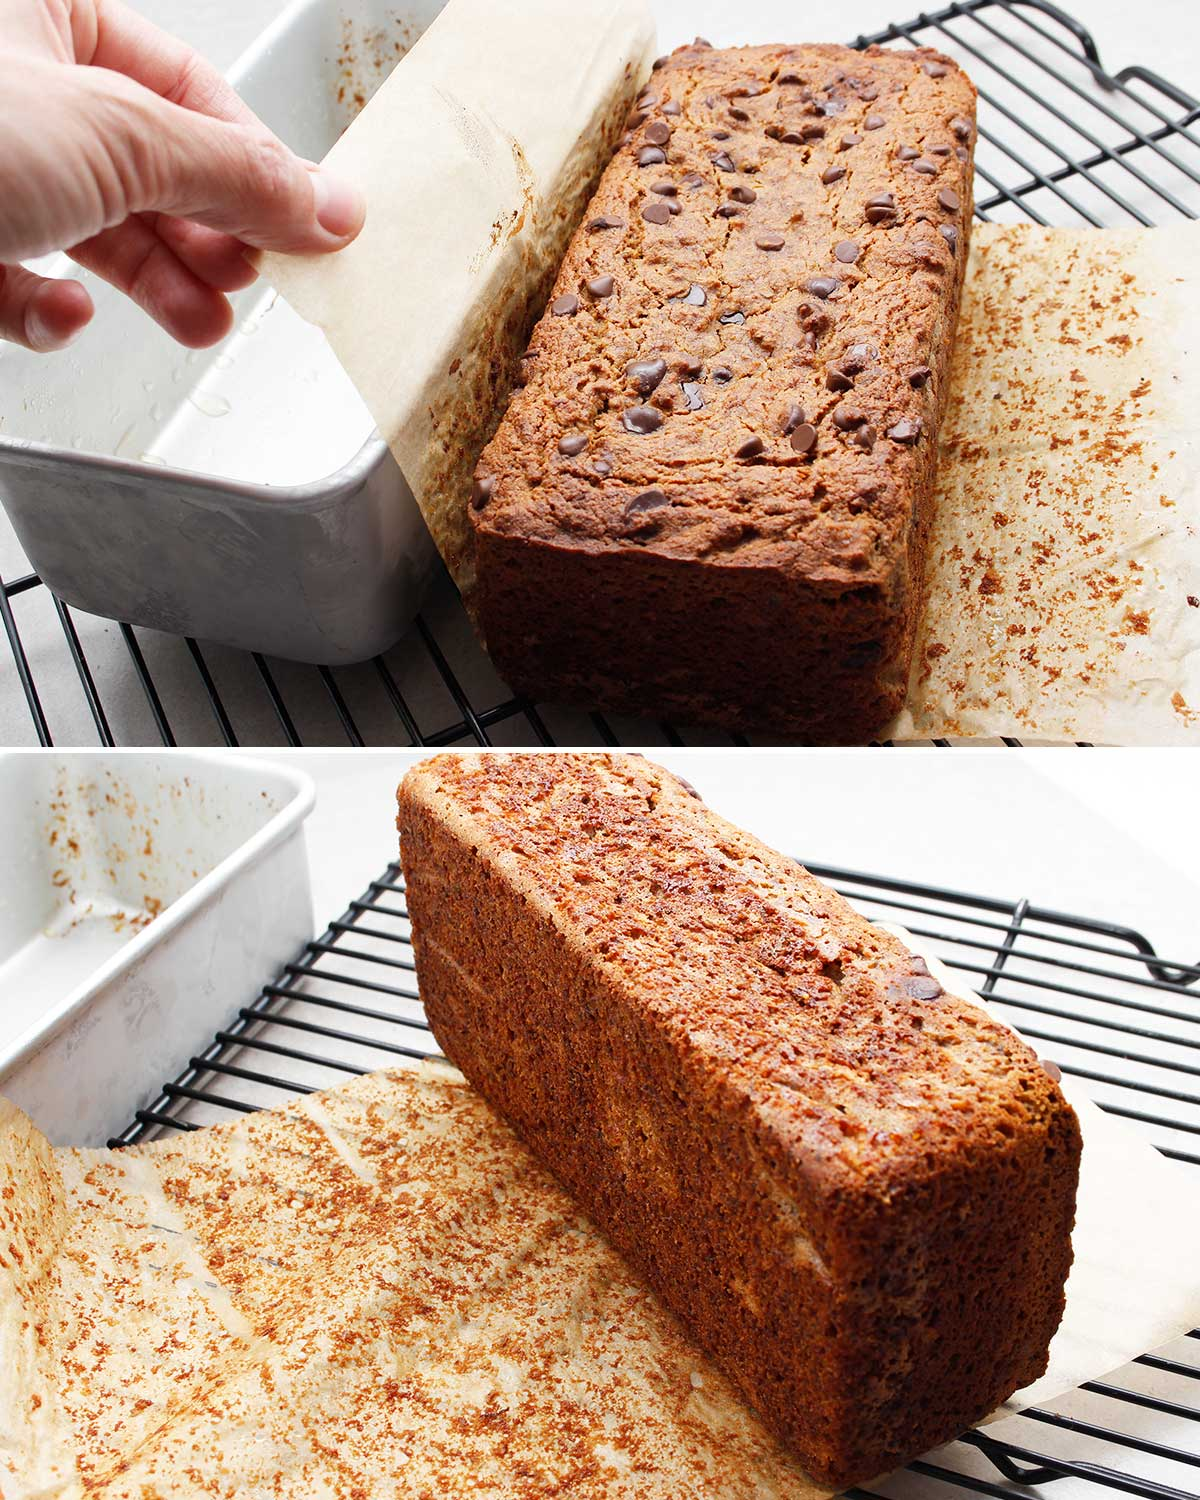 Showing how to remove the parchment paper once the grain-free banana bread is baked and cooled for 10 minutes. Cool completely once you remove the parchment paper.